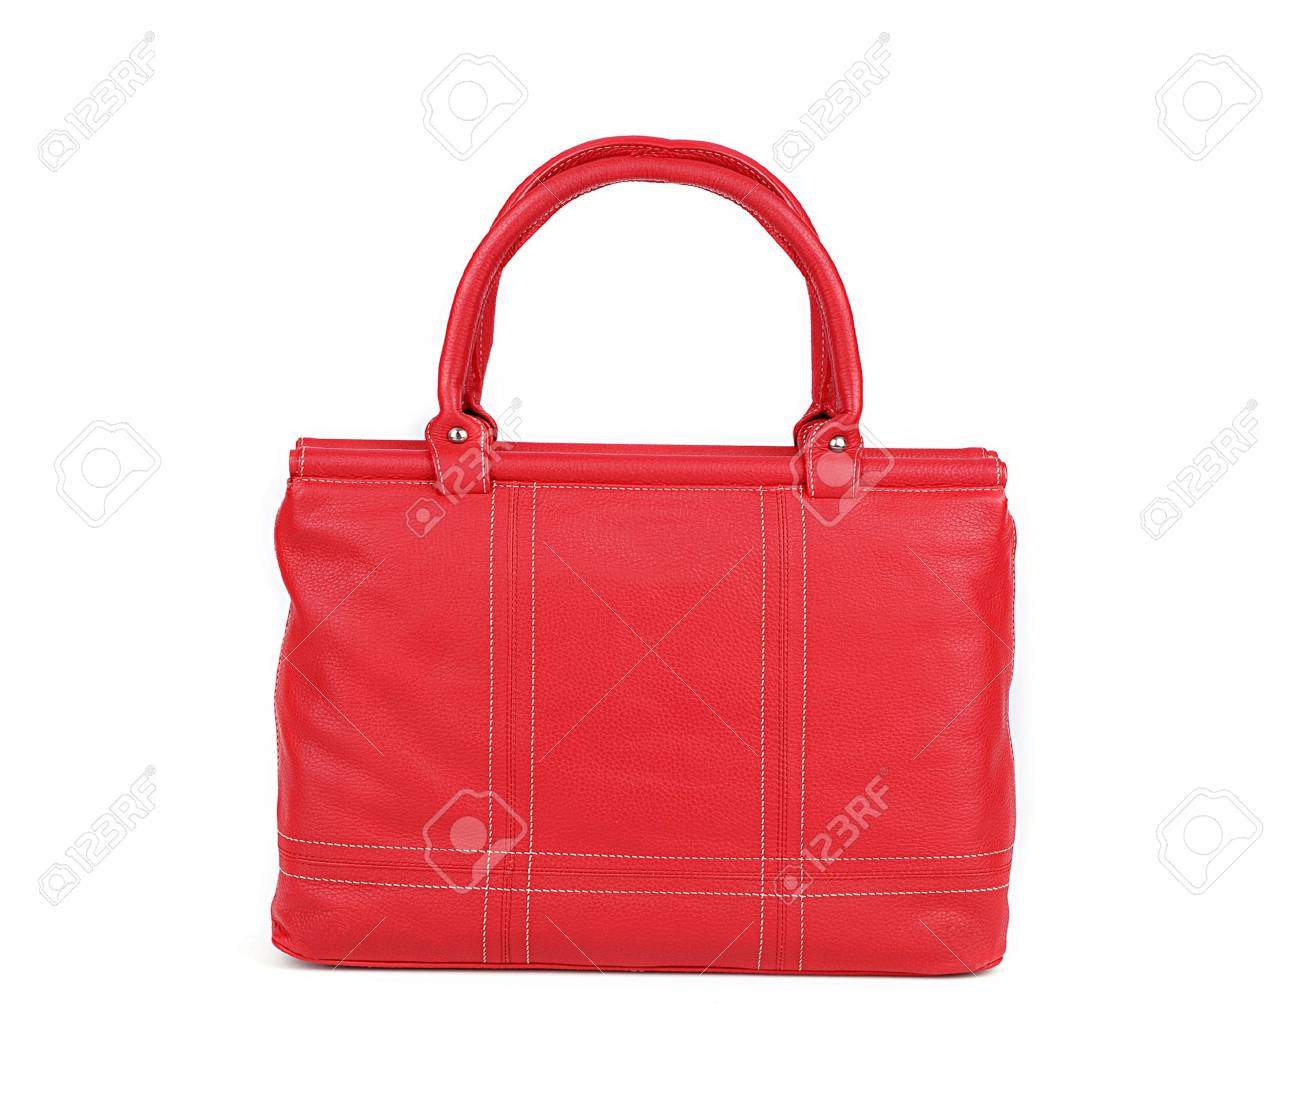 Red women bag isolated on white background Stock Photo - 14823132